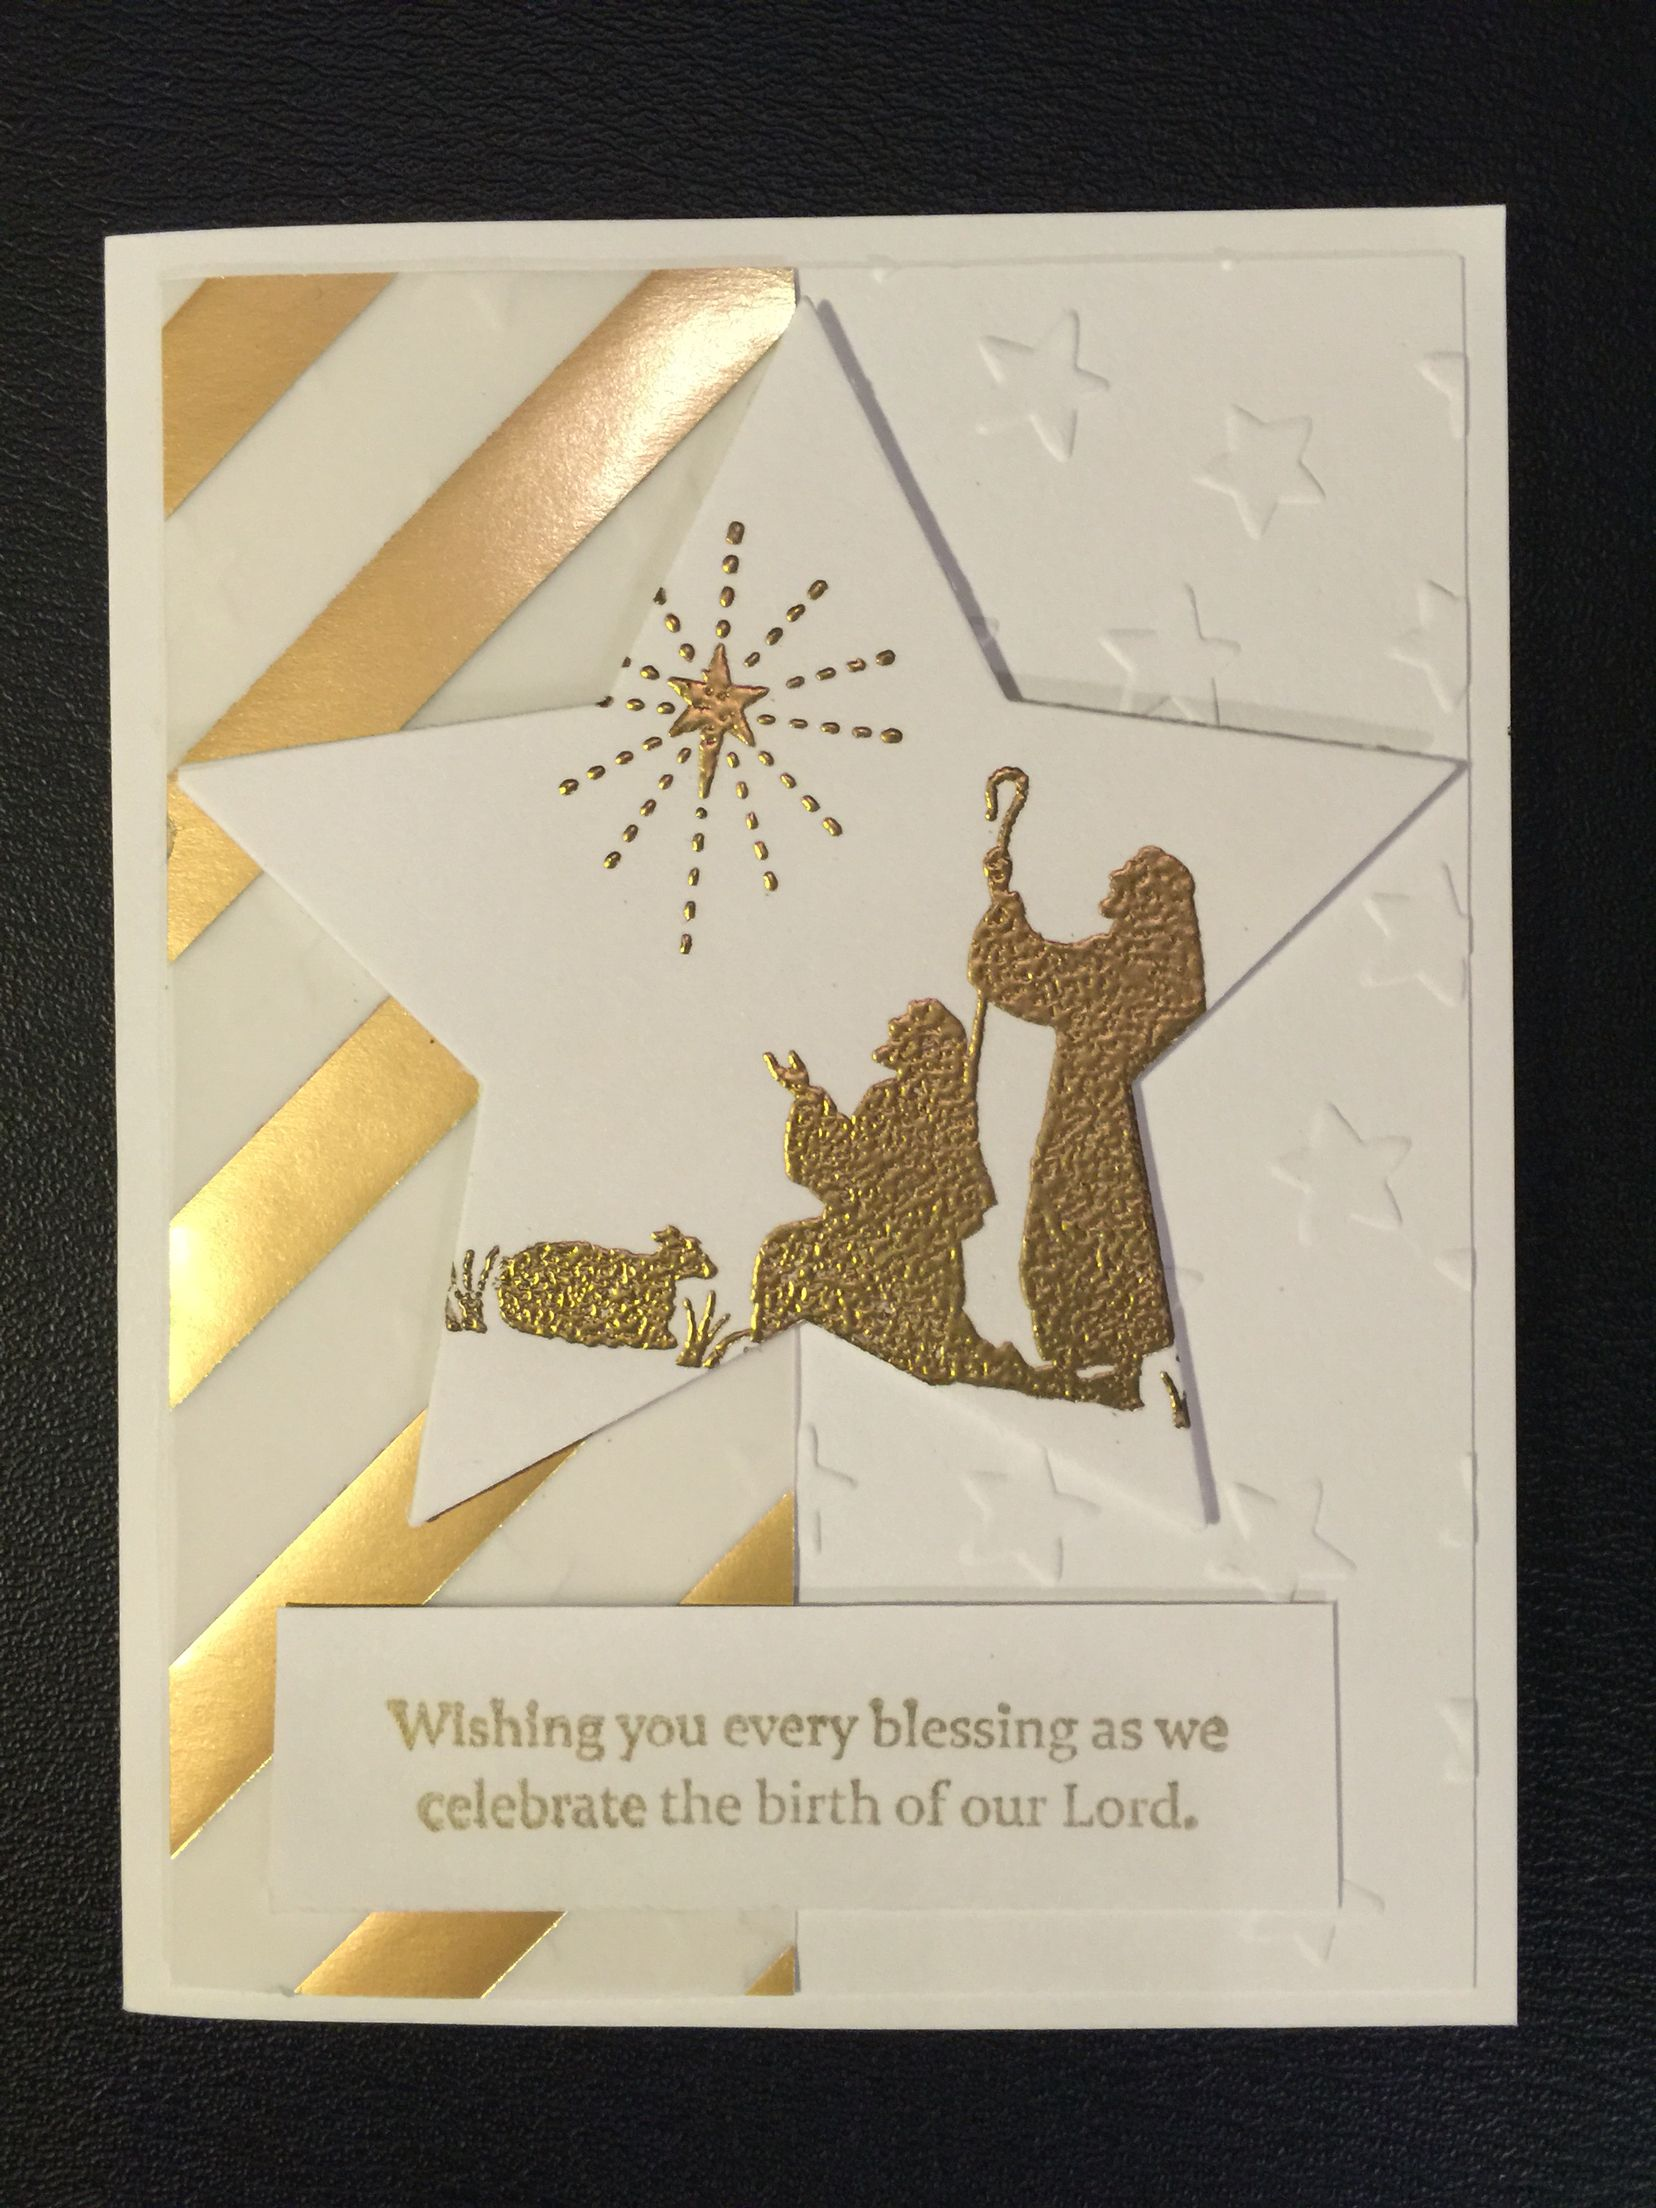 Religious Christmas Cards.Pin On Christmas Cards Crafts 2015 2016